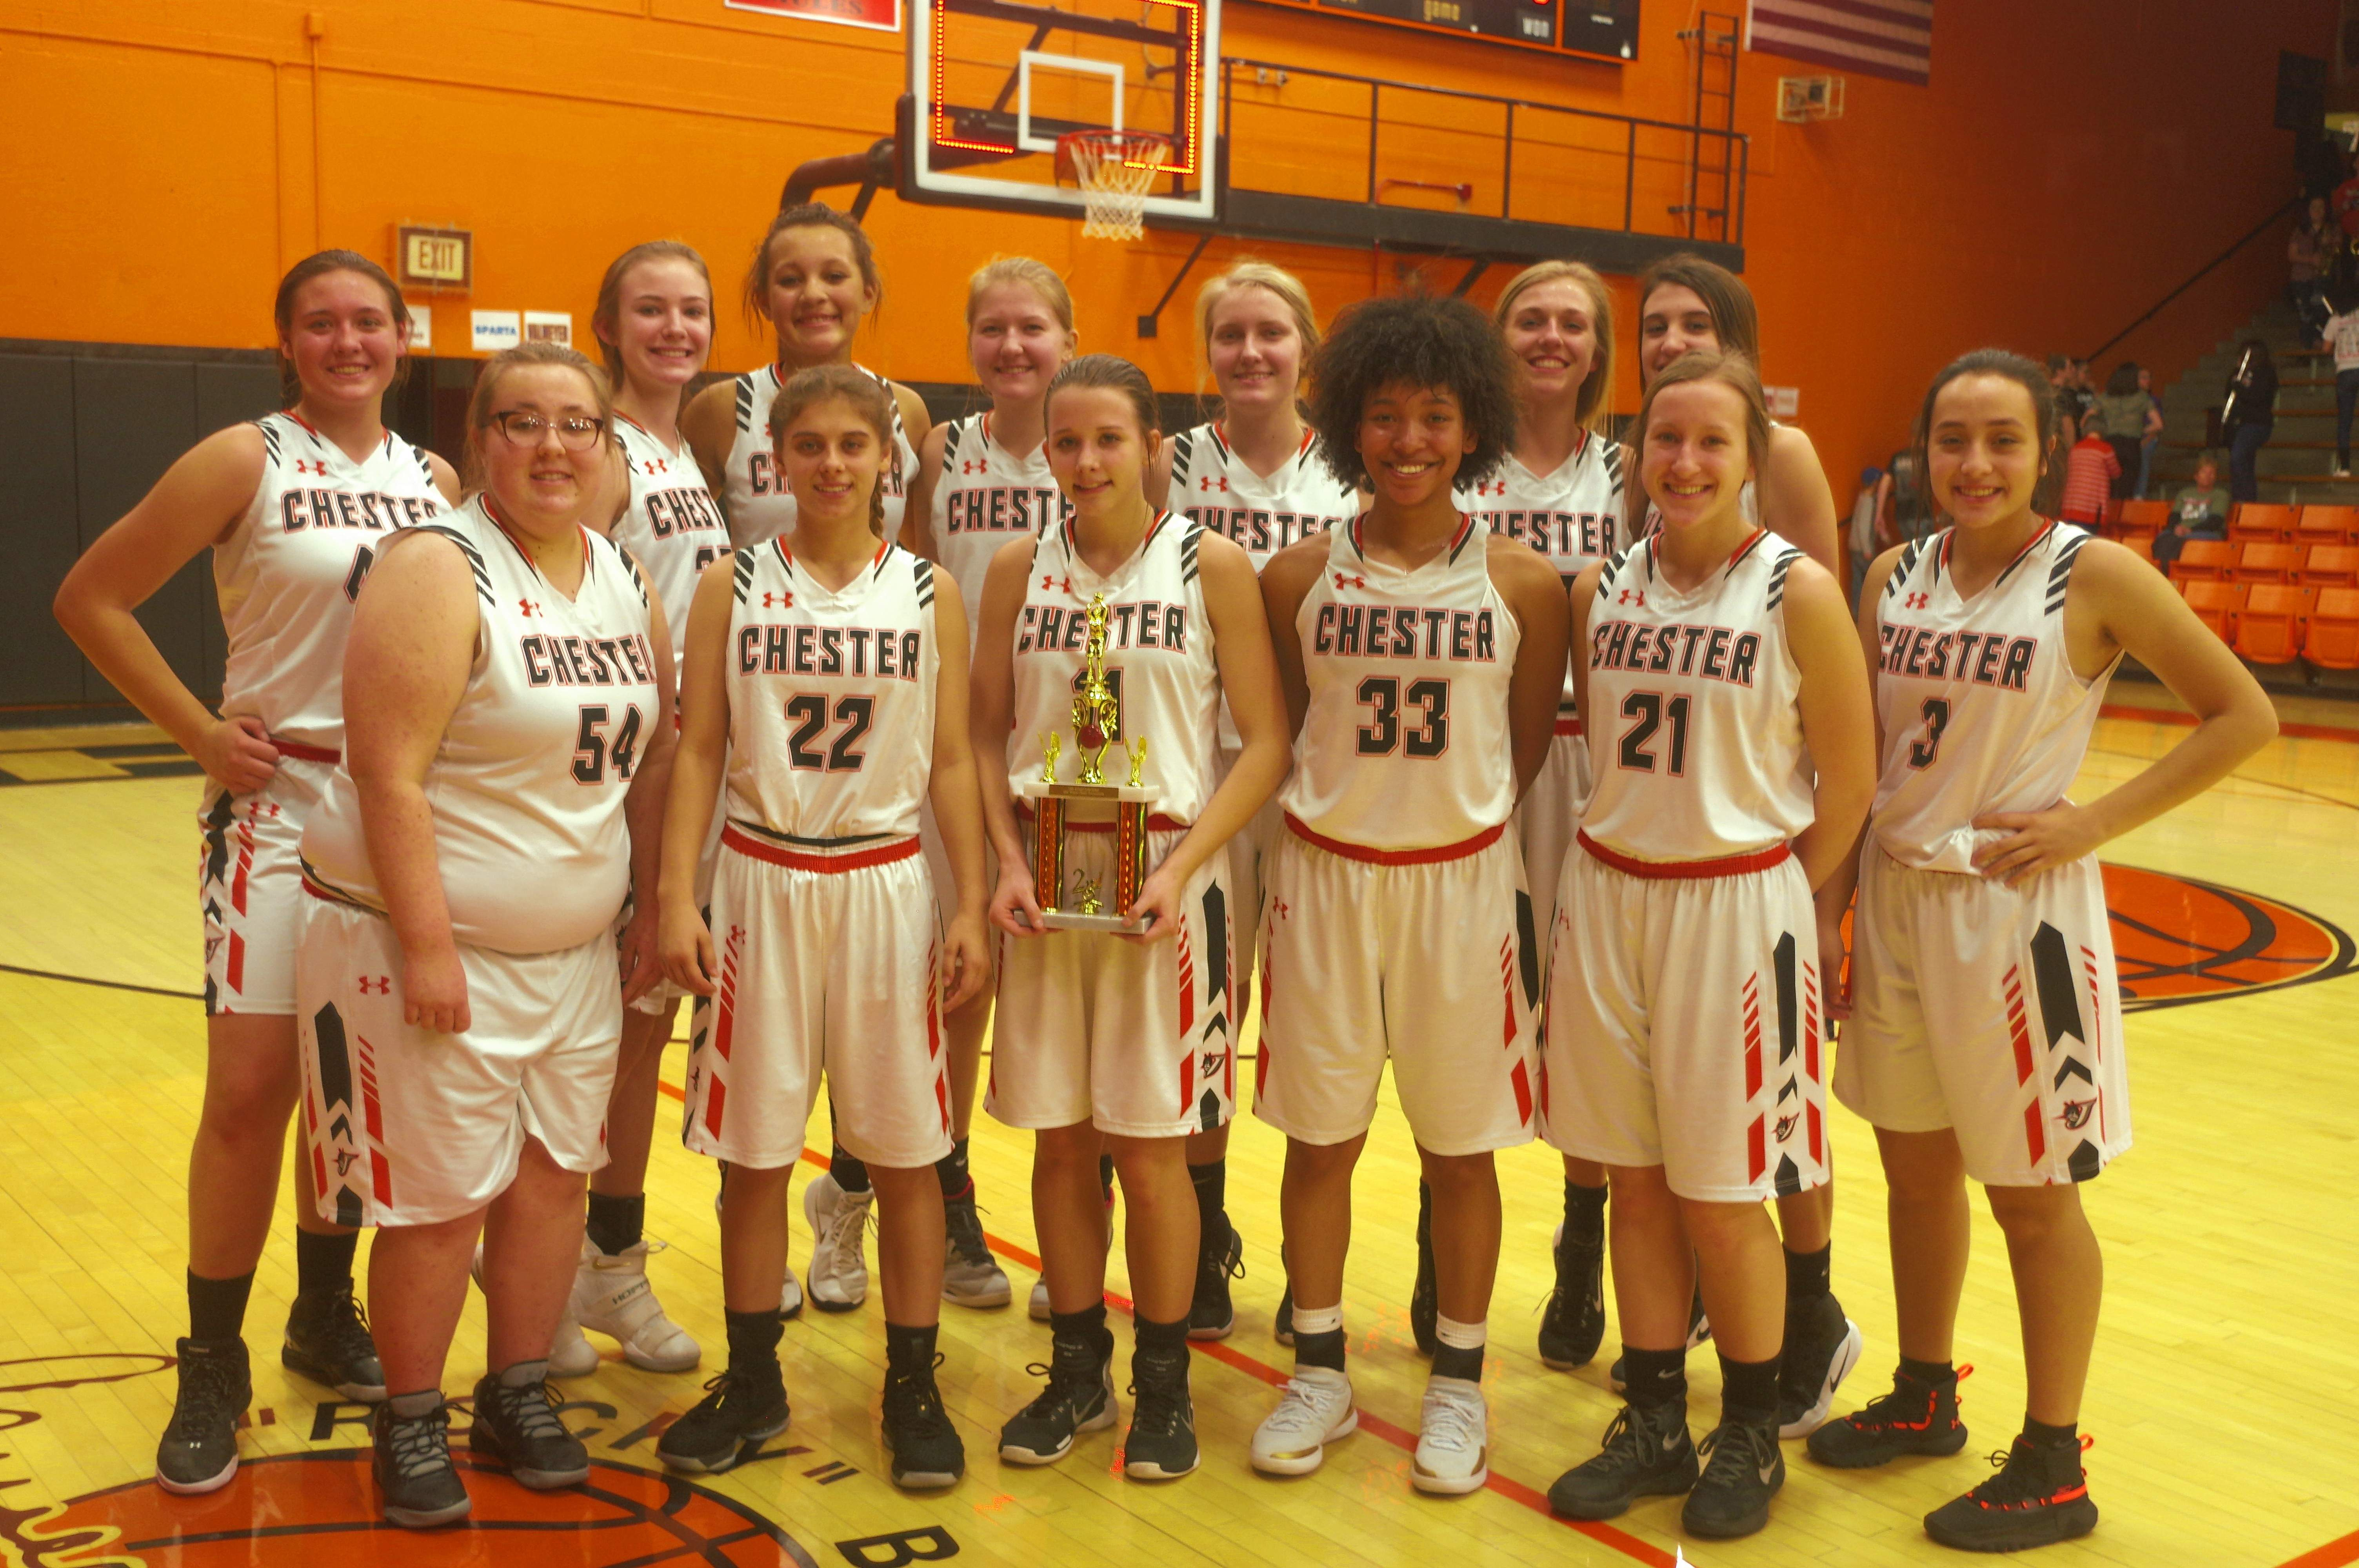 The Chester Lady Jackets with their 2nd place trophy. Front row, from left: Bailey Wahl; Torre Berger; Kendall Williams; Destiny Williams; Peyton Clendenin and Maria Nickle.Back row, from left: Alyssa Seymour; Audrey Hopper; Kailyn Absher; Katie Shinabargar; Ally Rowold; Josie Kattenbraker and Reese Chandler.The Jackets are coached by Pat Knowles, Jennifer King and Rick Powley.